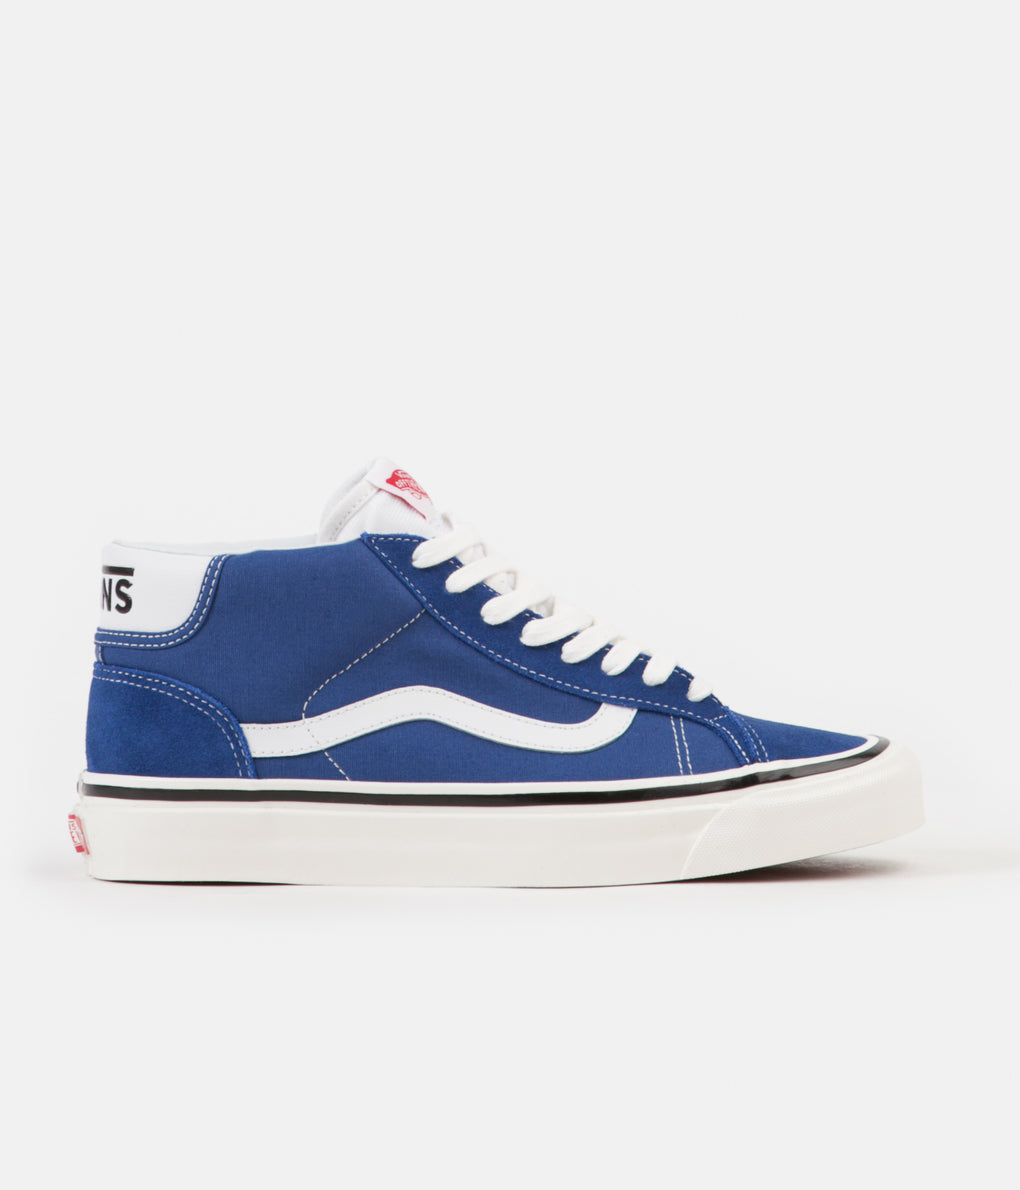 Vans Mid School 37 DX Anaheim Factory Shoes - OG Blue